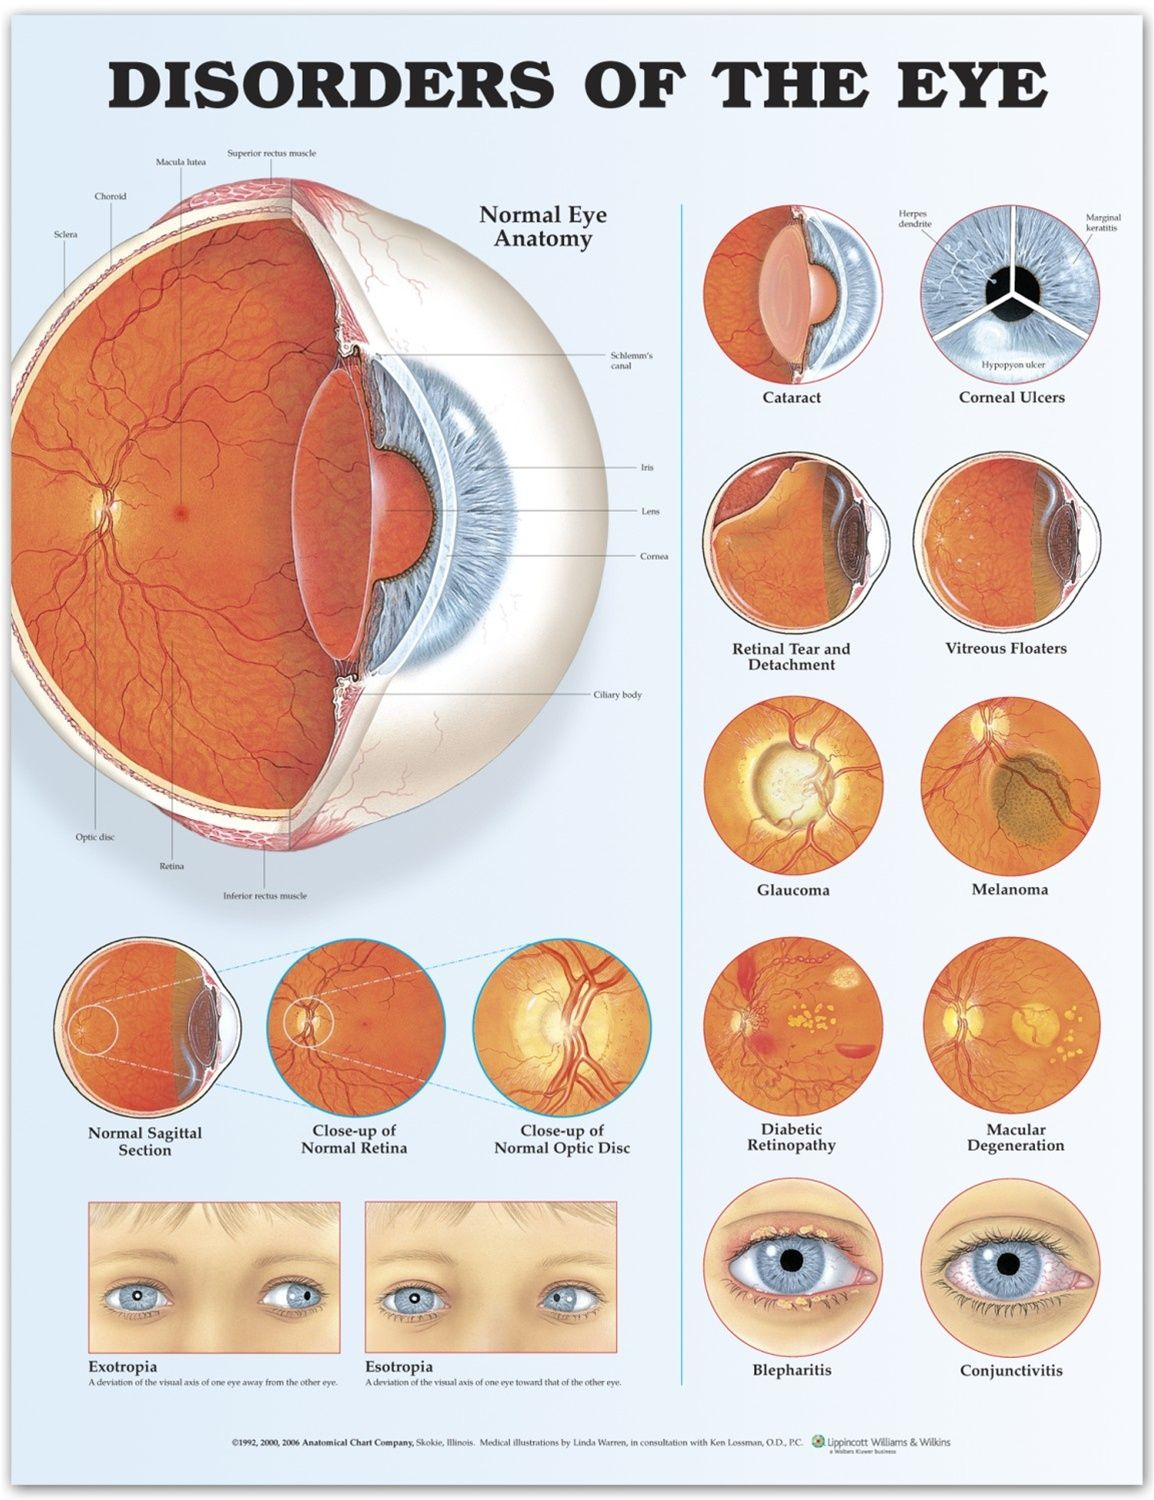 Disorders Of The Eye Infographic   misc   Pinterest   Infographic ...